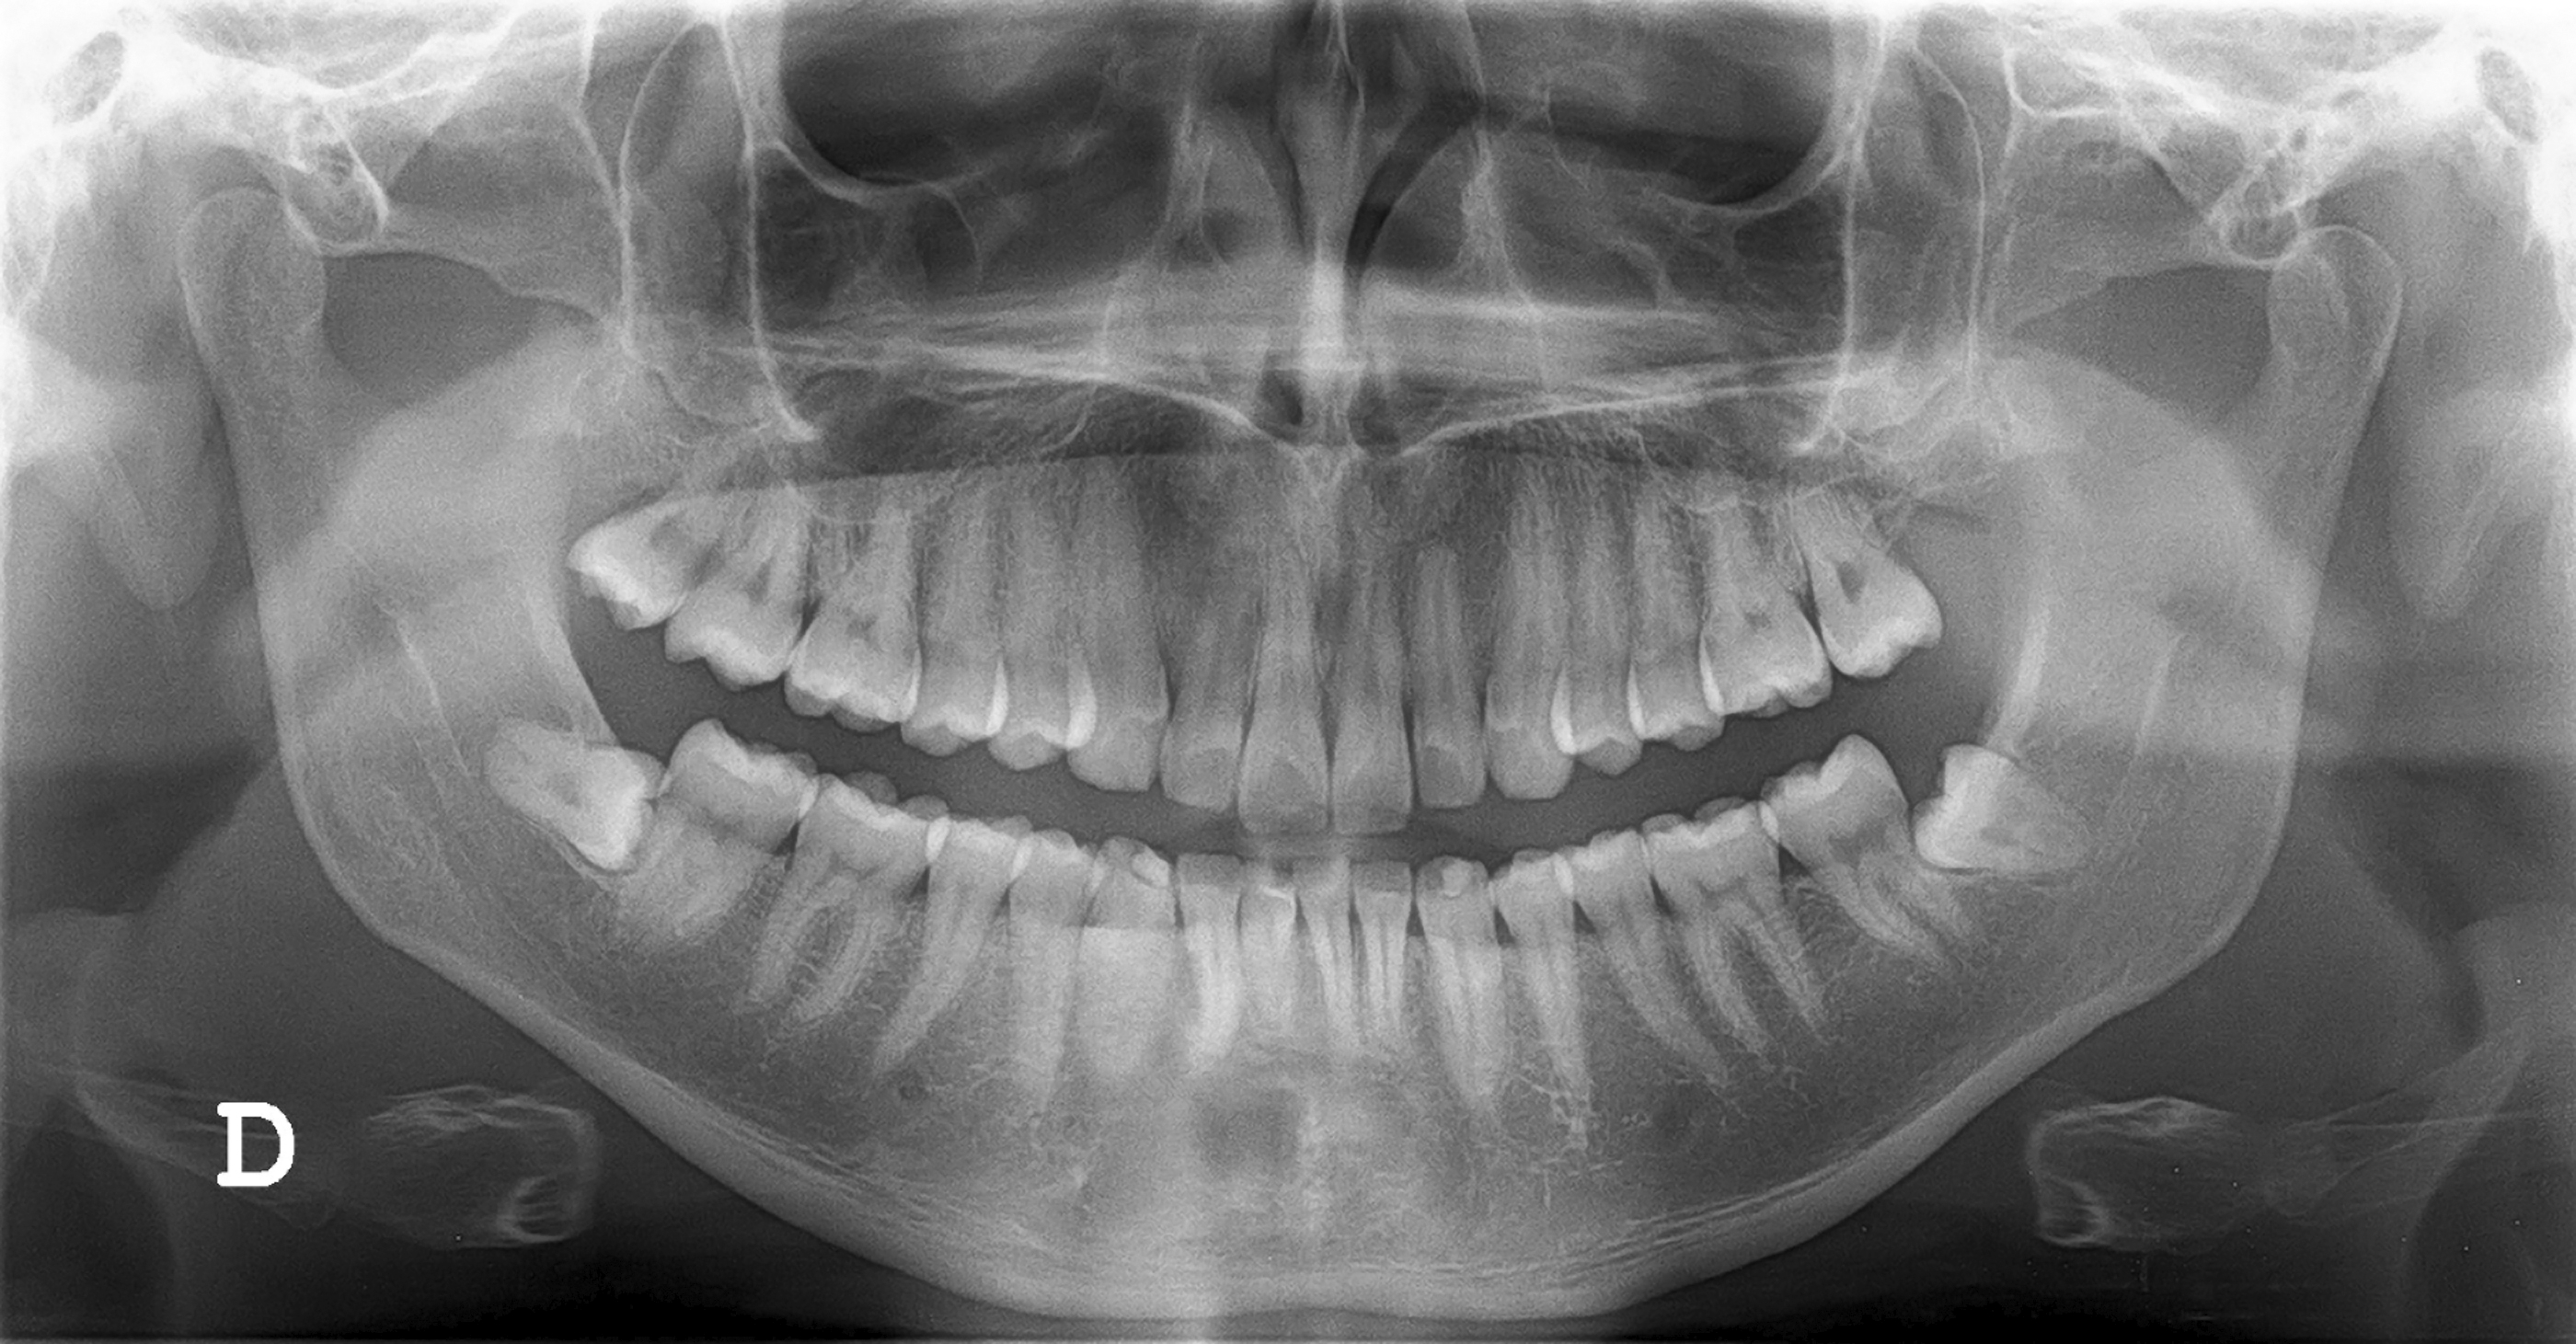 Digital Vs Conventional Radiography In The Dental Office